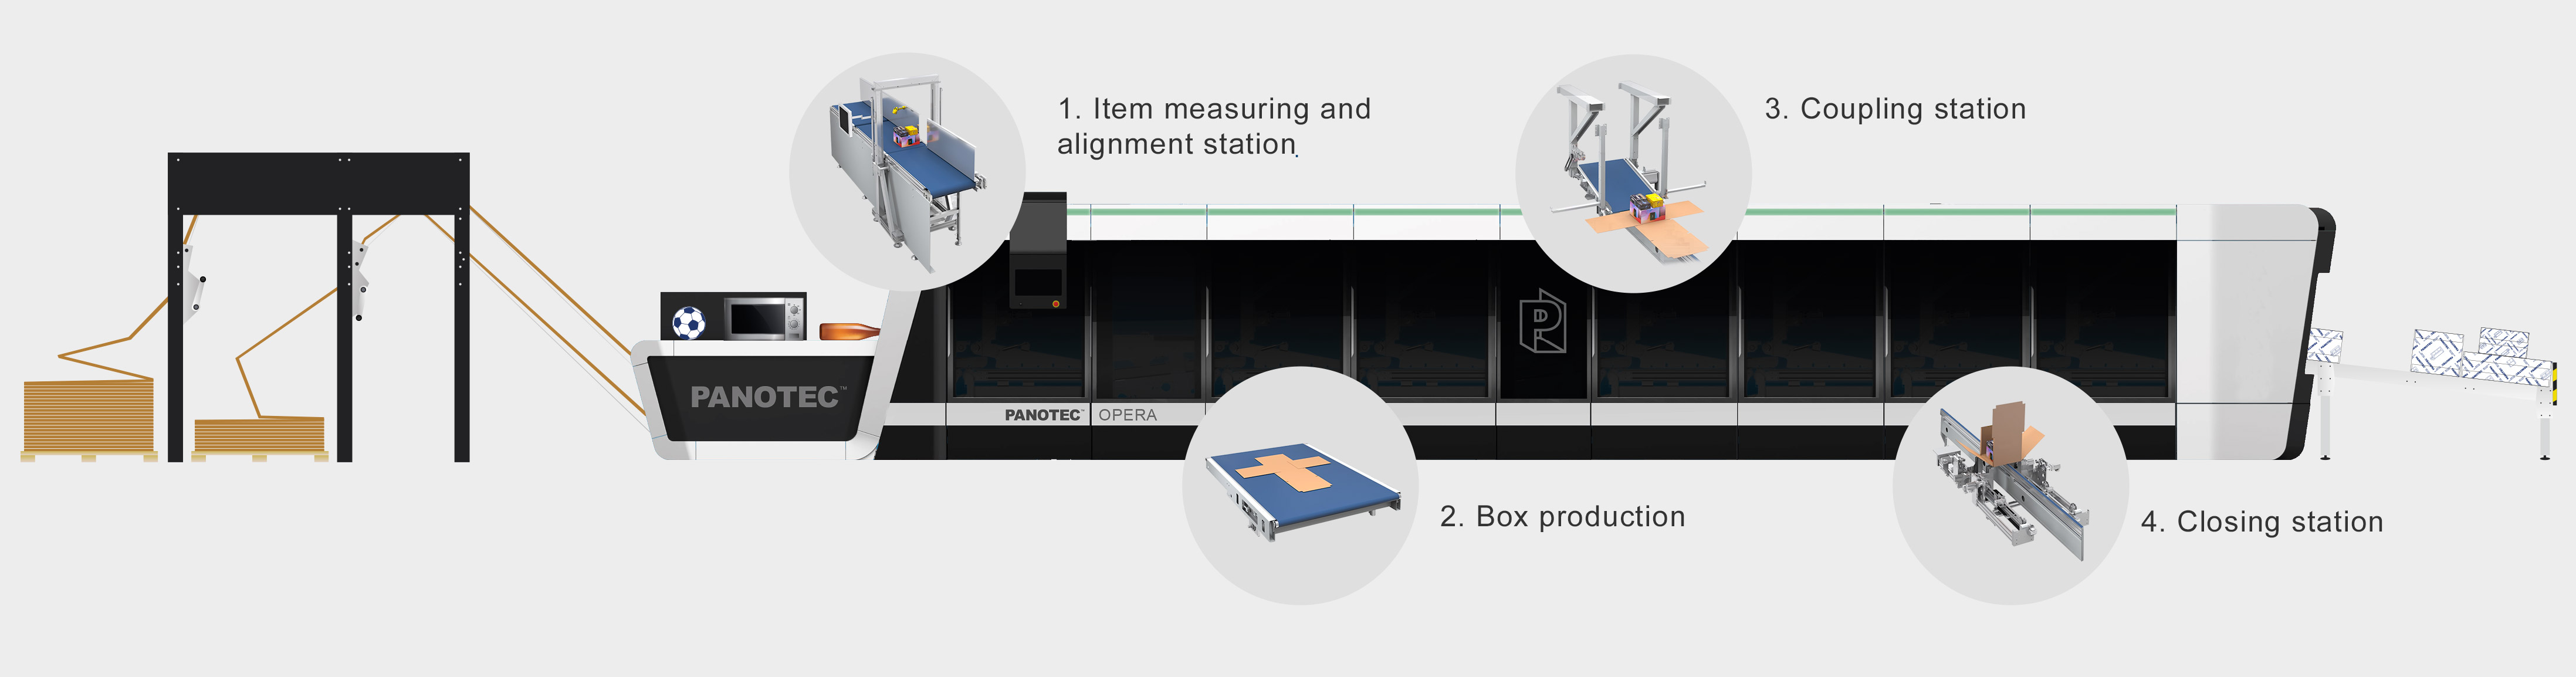 Main Features of the Packaging Line